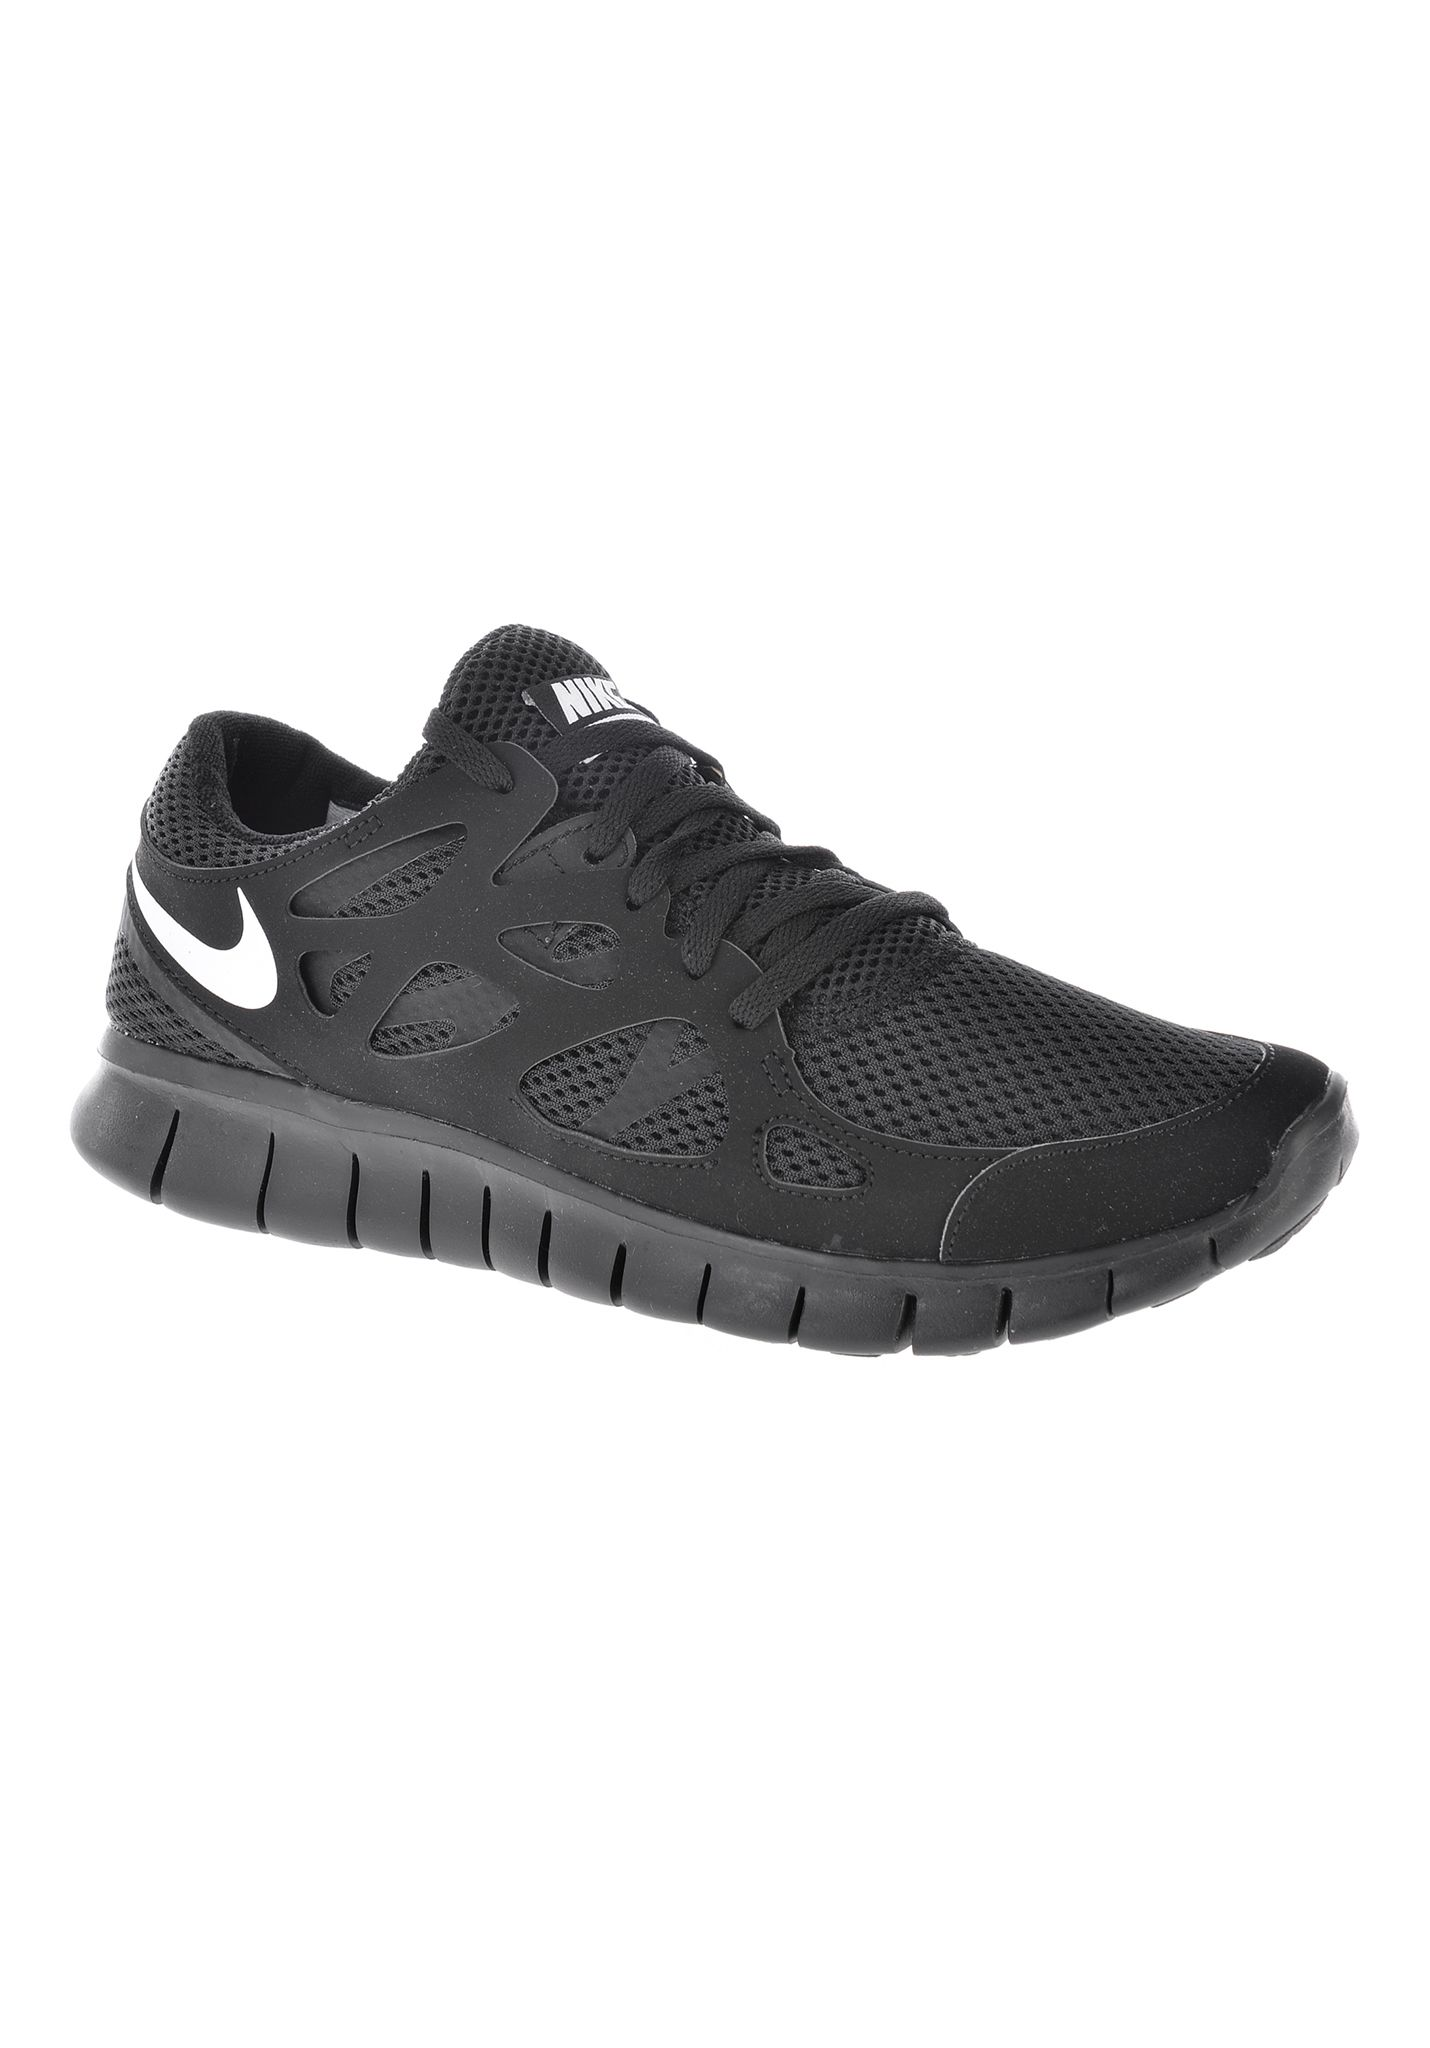 Cheap Nike Free 3.0 V4 Black Red White Mens Running Shoes